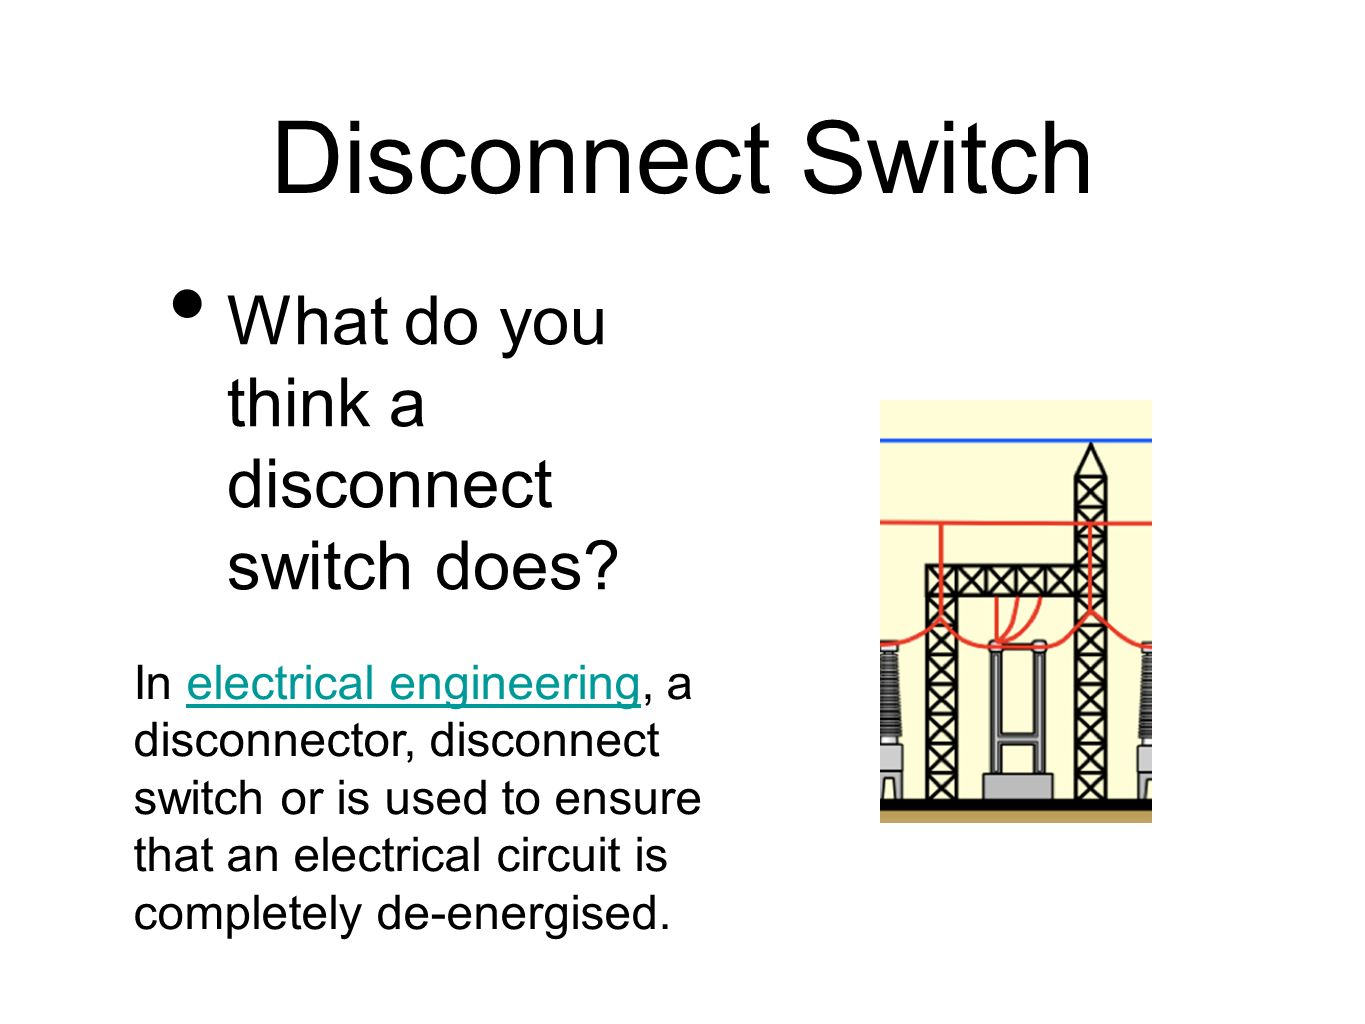 Disconnect Switch What do you think a disconnect switch does